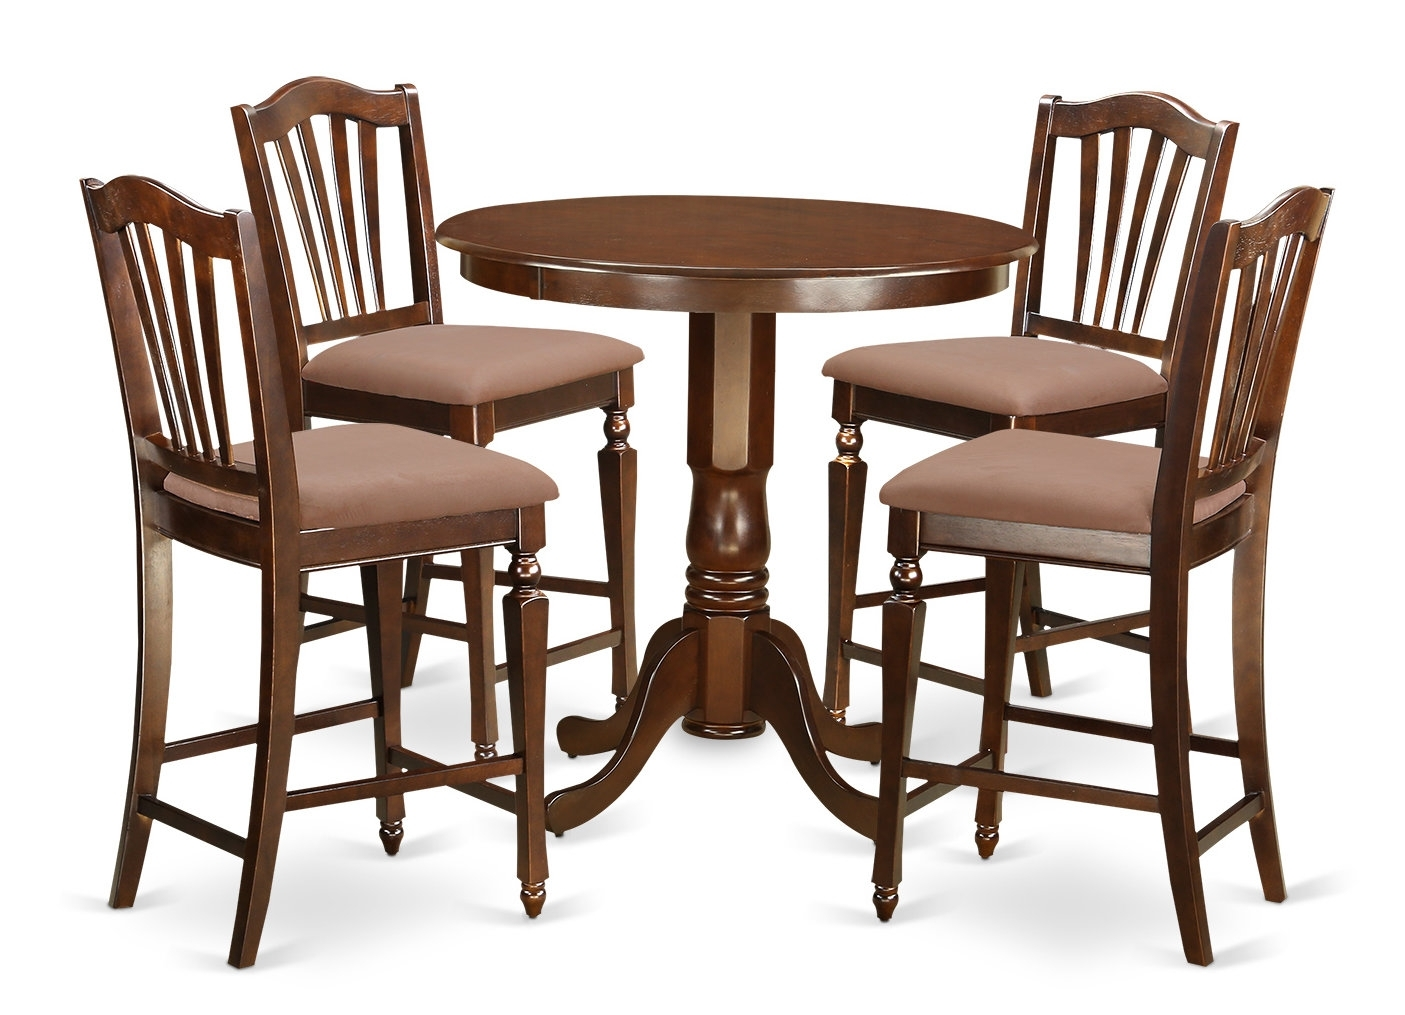 East West Jackson 5 Piece Counter Height Pub Table Set | Wayfair Regarding Most Popular Jaxon 5 Piece Round Dining Sets With Upholstered Chairs (Image 8 of 20)